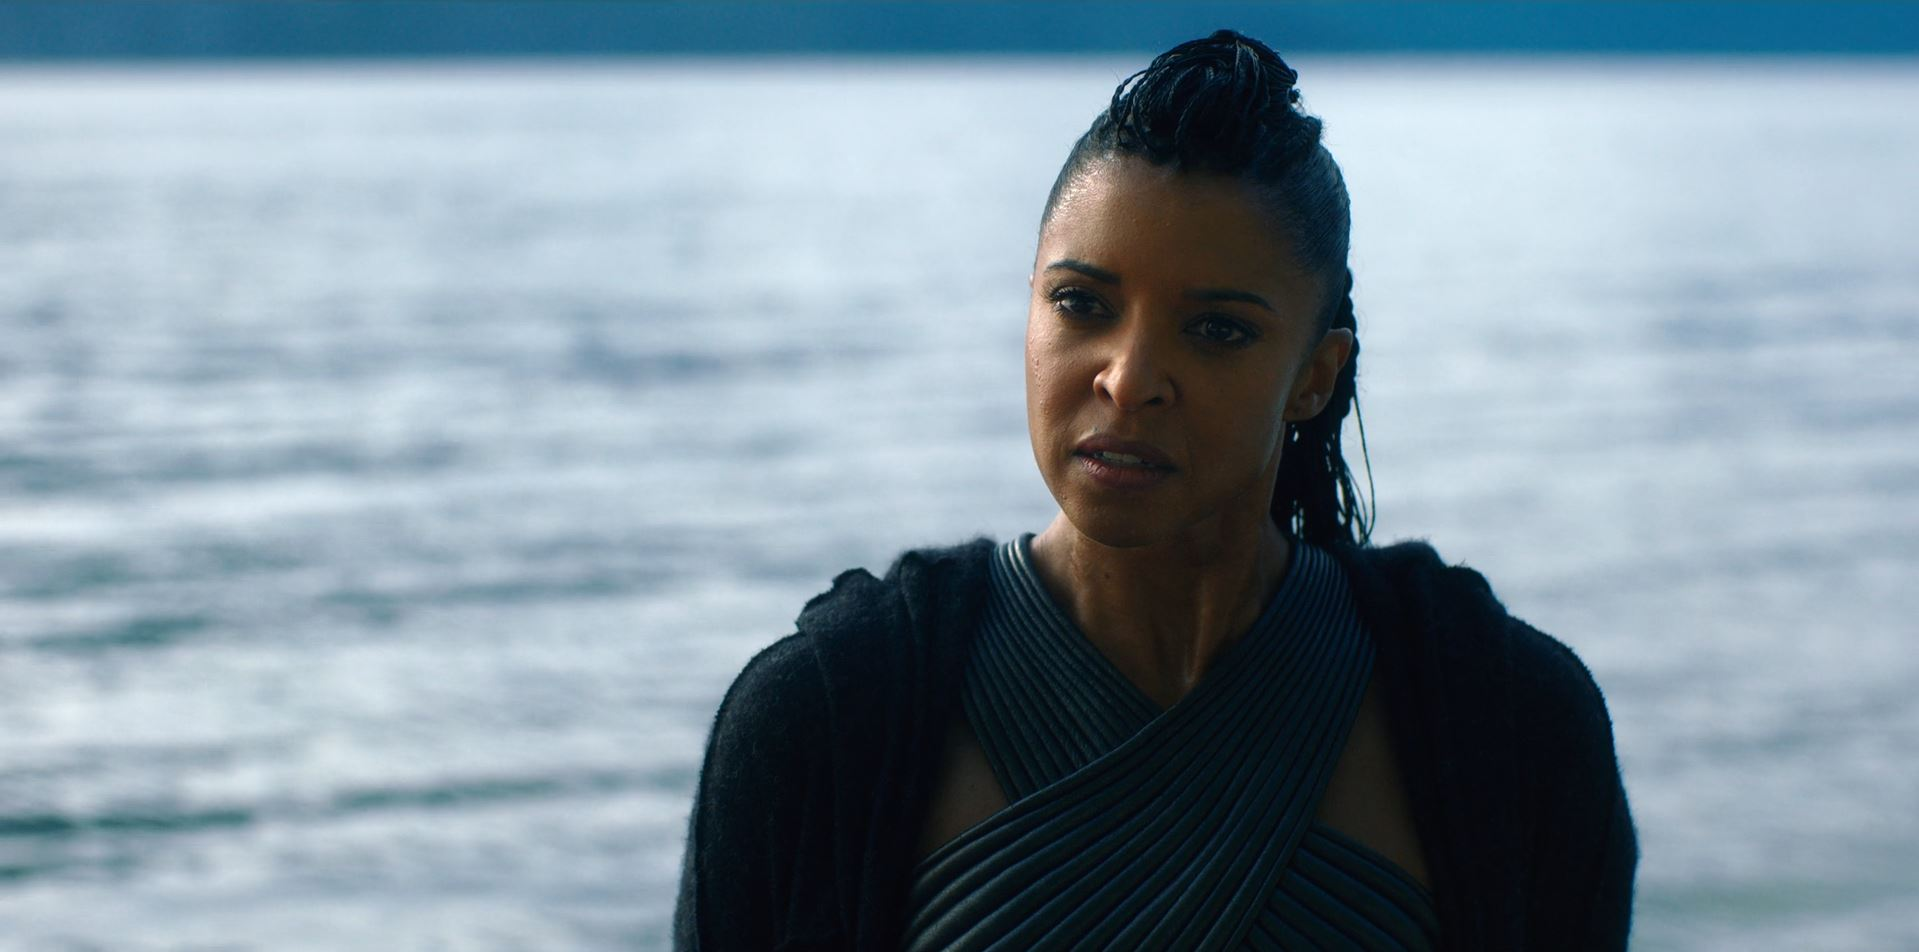 Altered Carbon Season 2 Review - Quellcrist Falconer played by Renée Elise Goldsberry